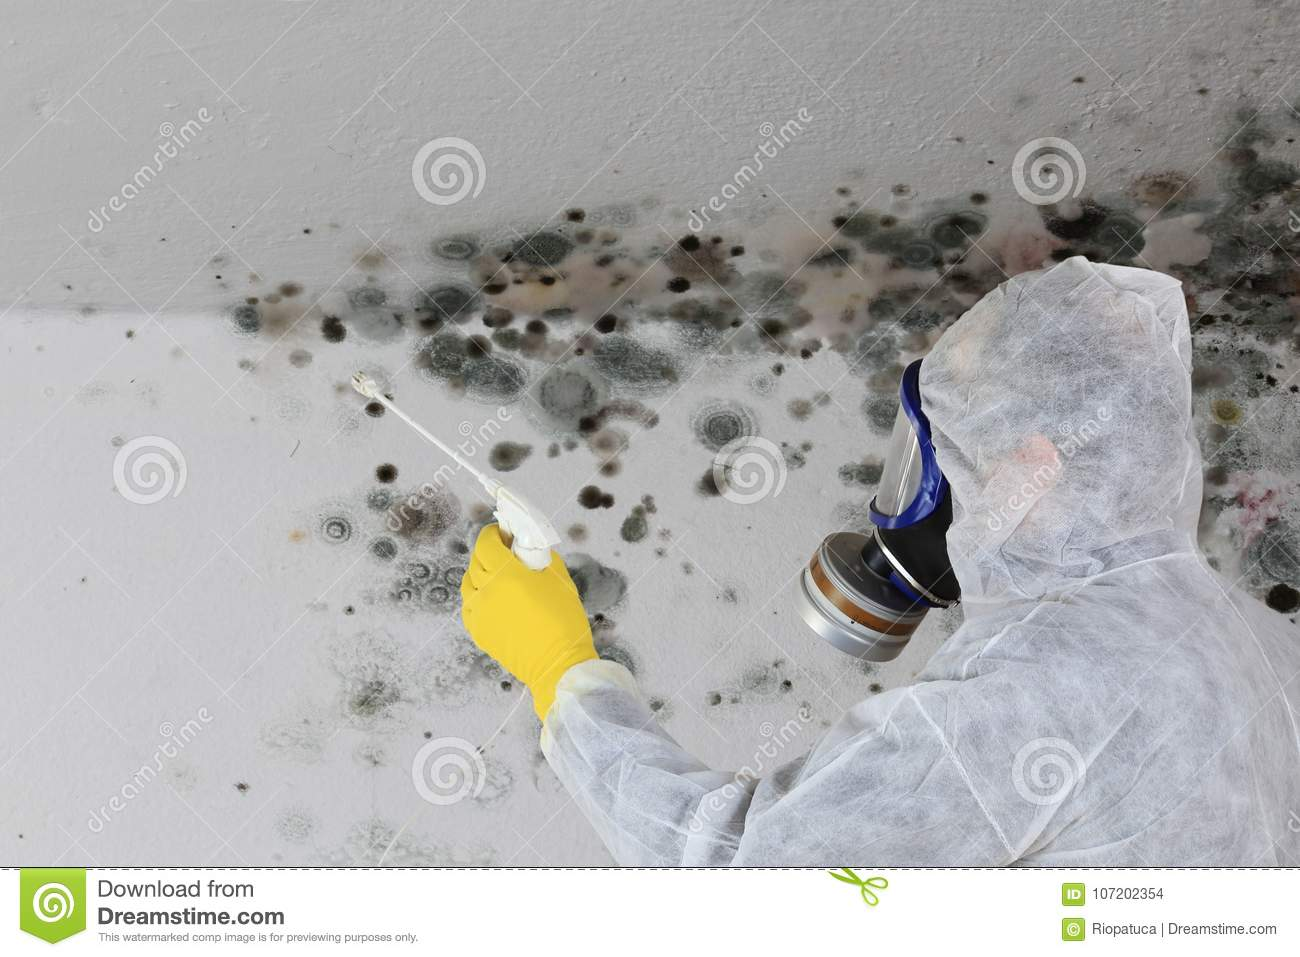 Man removing Mold fungus with respirator mask